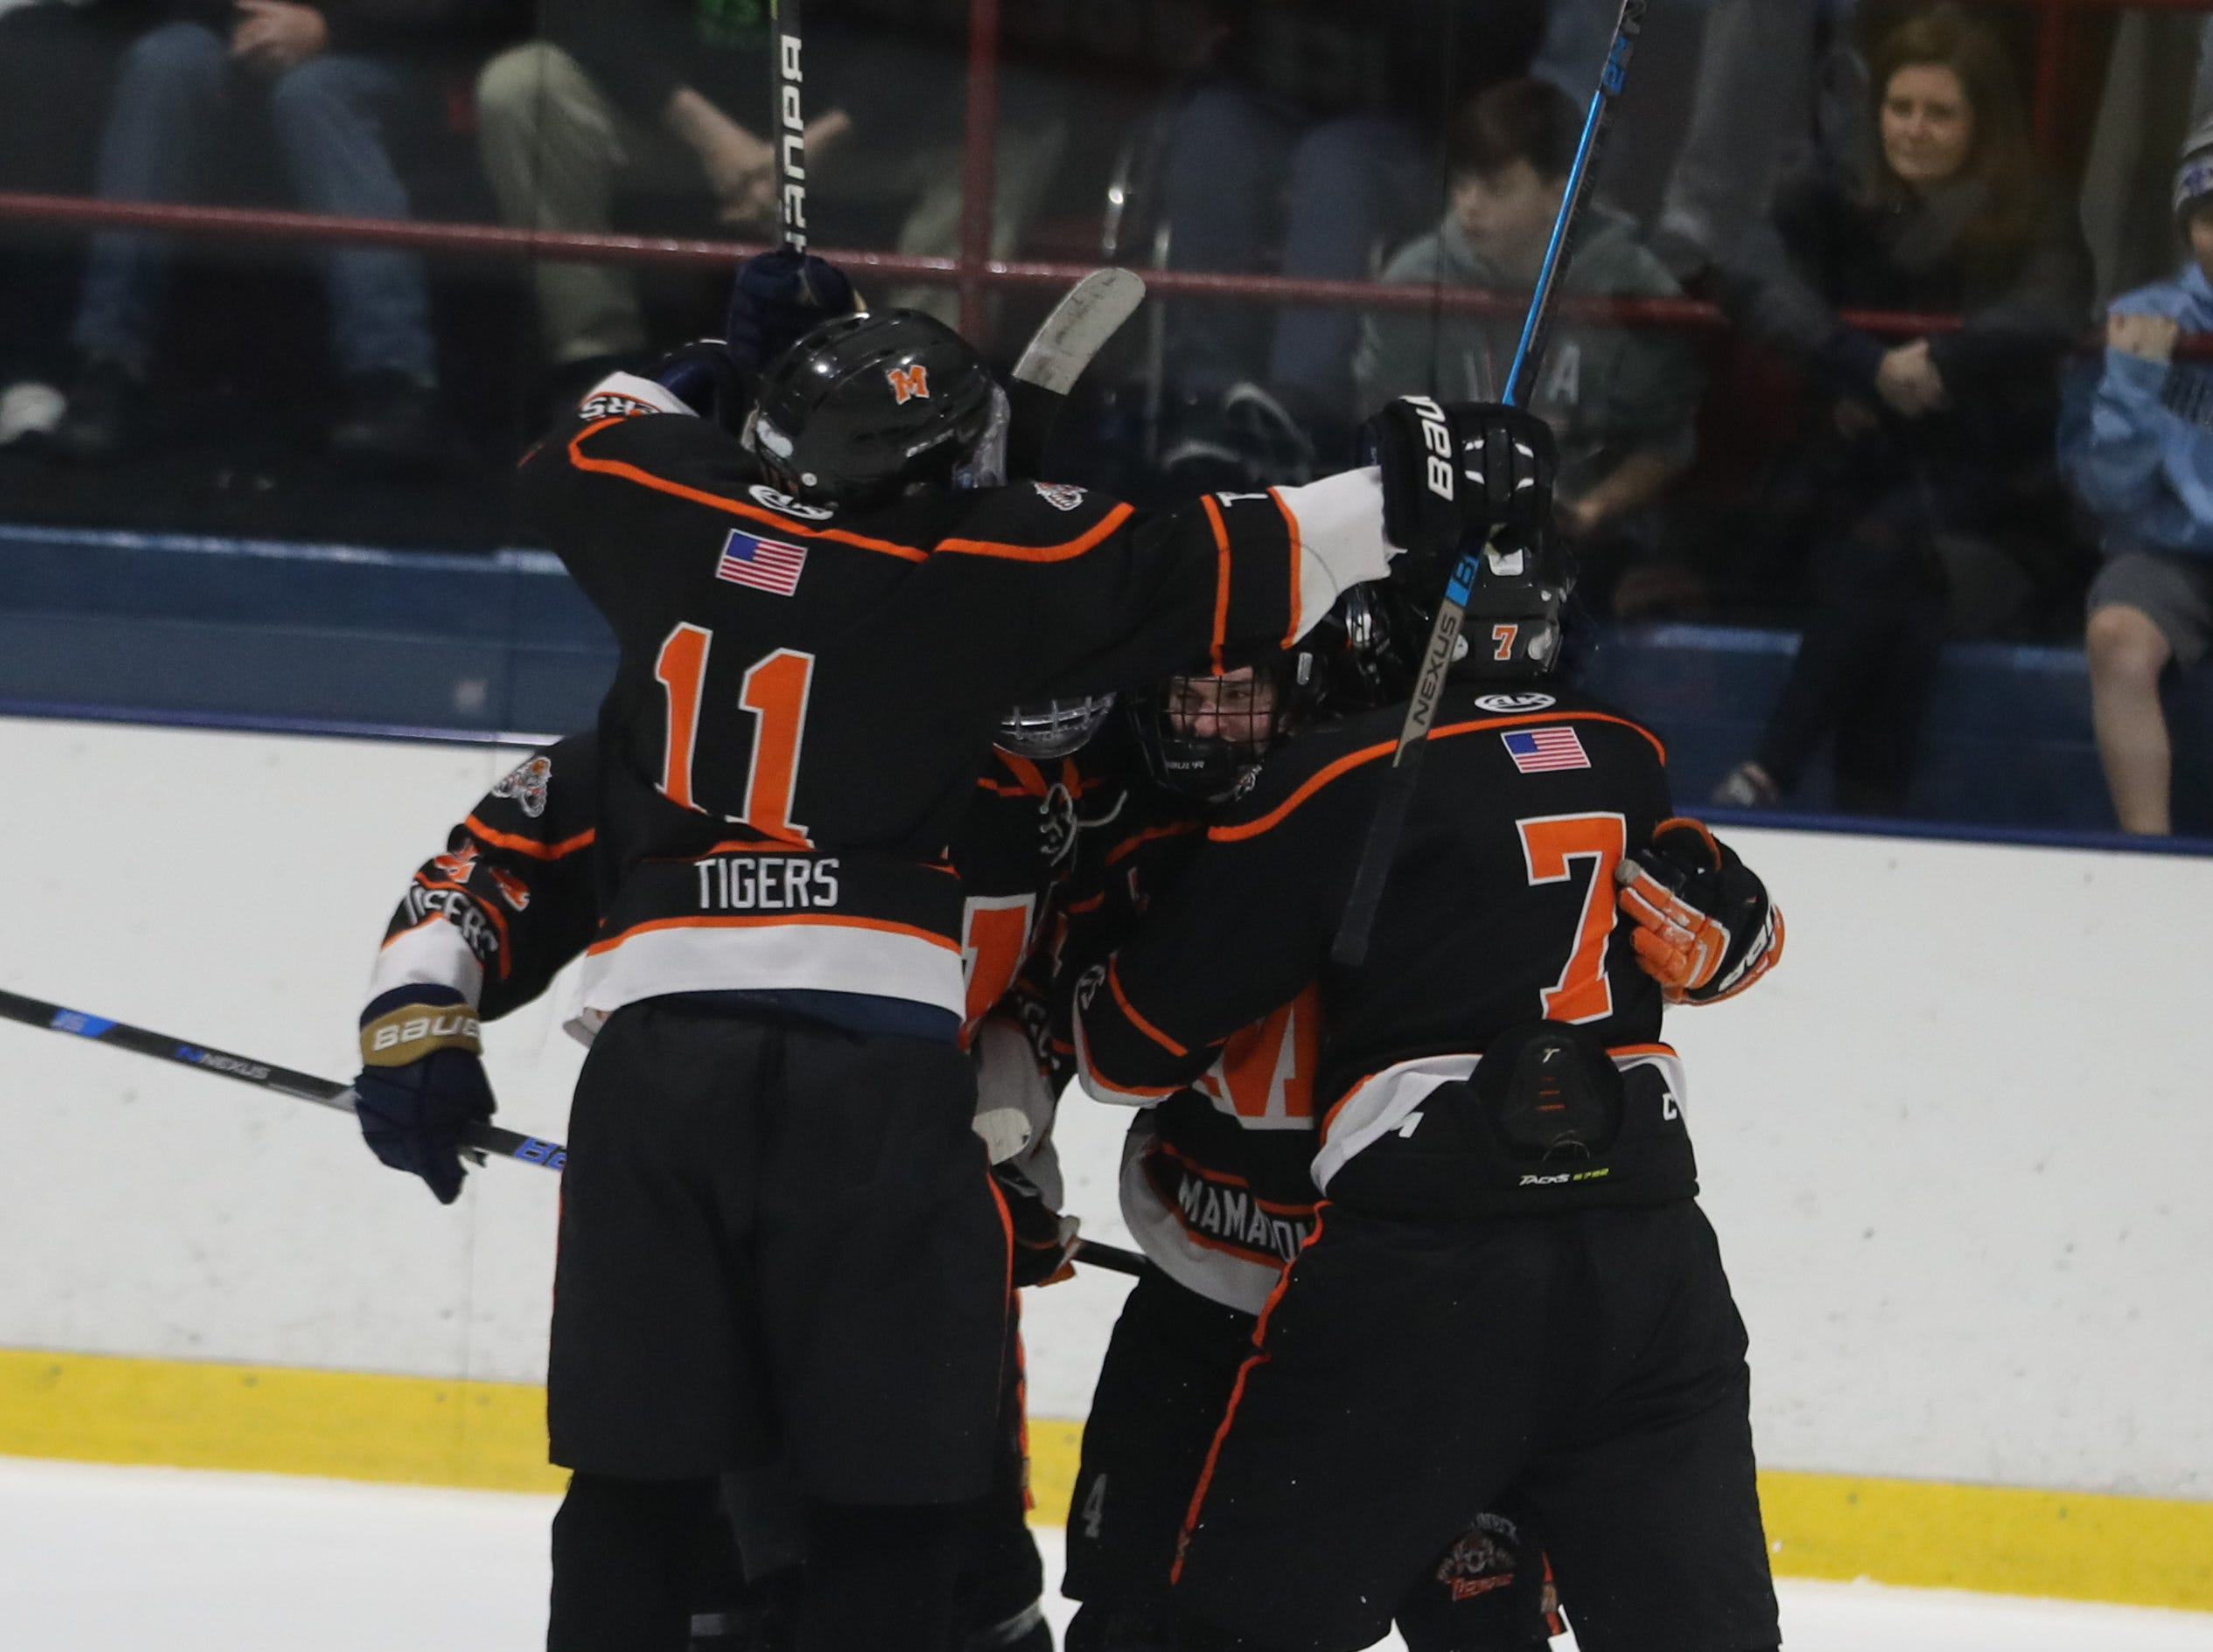 Mamaroneck celebrates after scoring against Suffern in the Section 1 Division 1 championship game at Sport-o-Rama in Monsey Feb. 24, 2019. Suffern defeated Mamaroneck 4-1